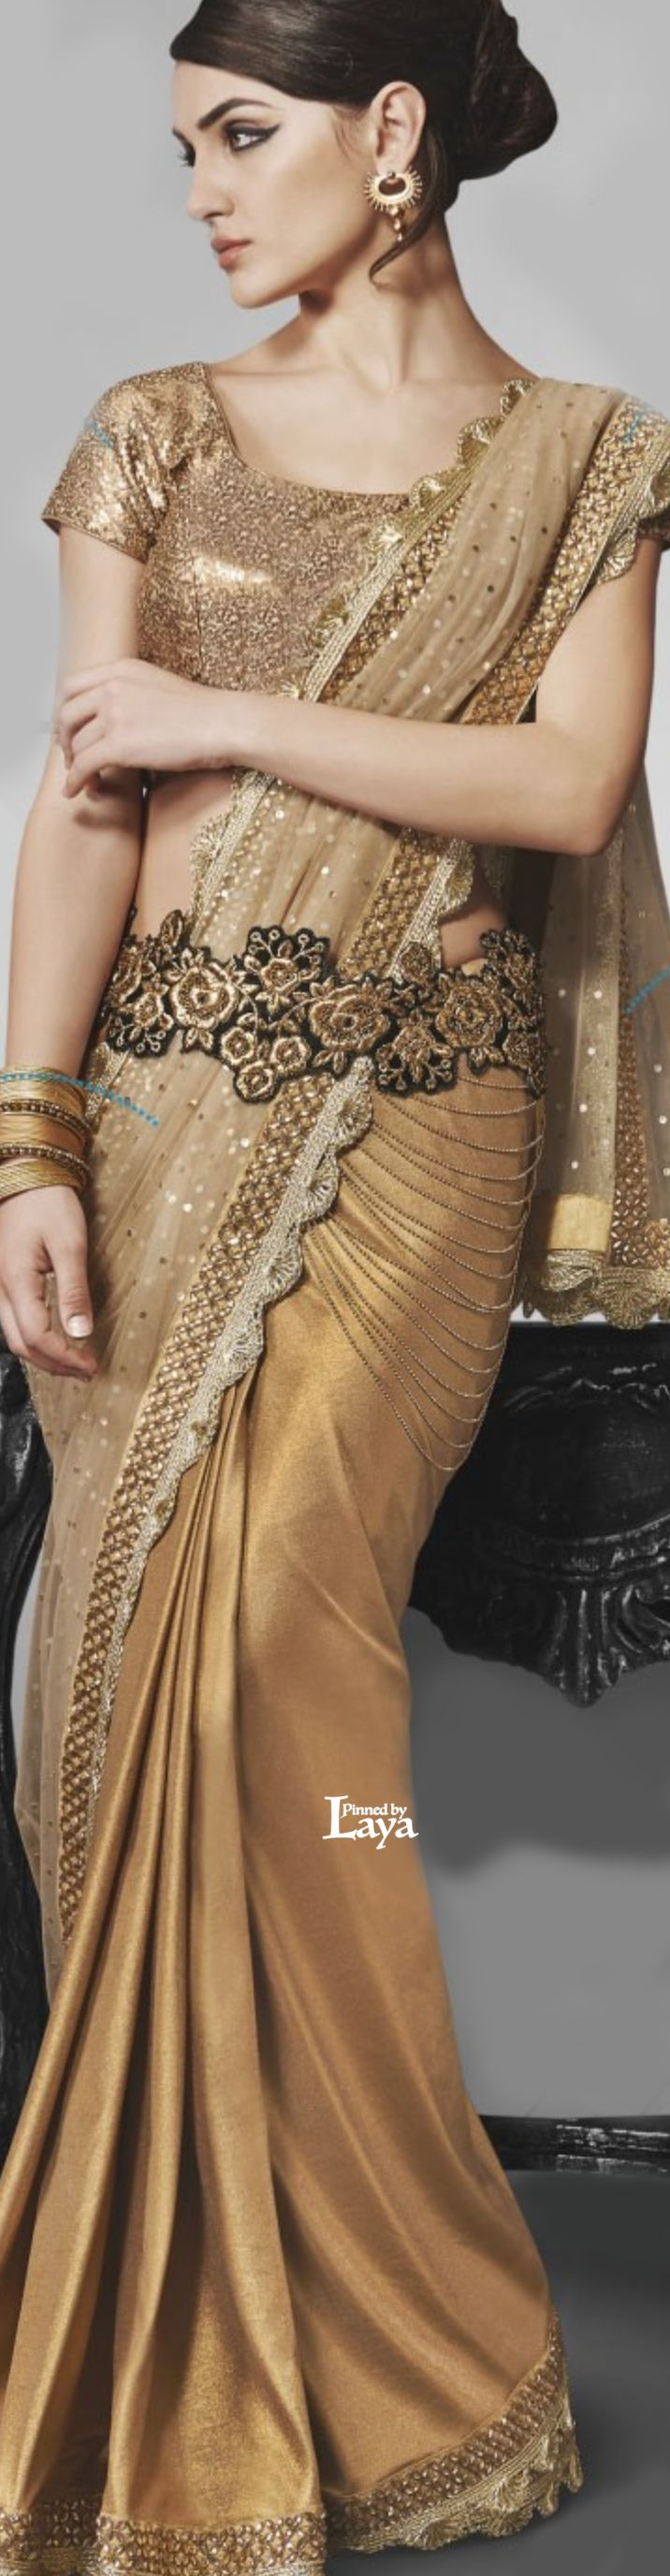 ♔LAYA♔GOLD COLOR DESIGNER VIKRAM FADNIS PARTY WEAR SAREE♔♔♔